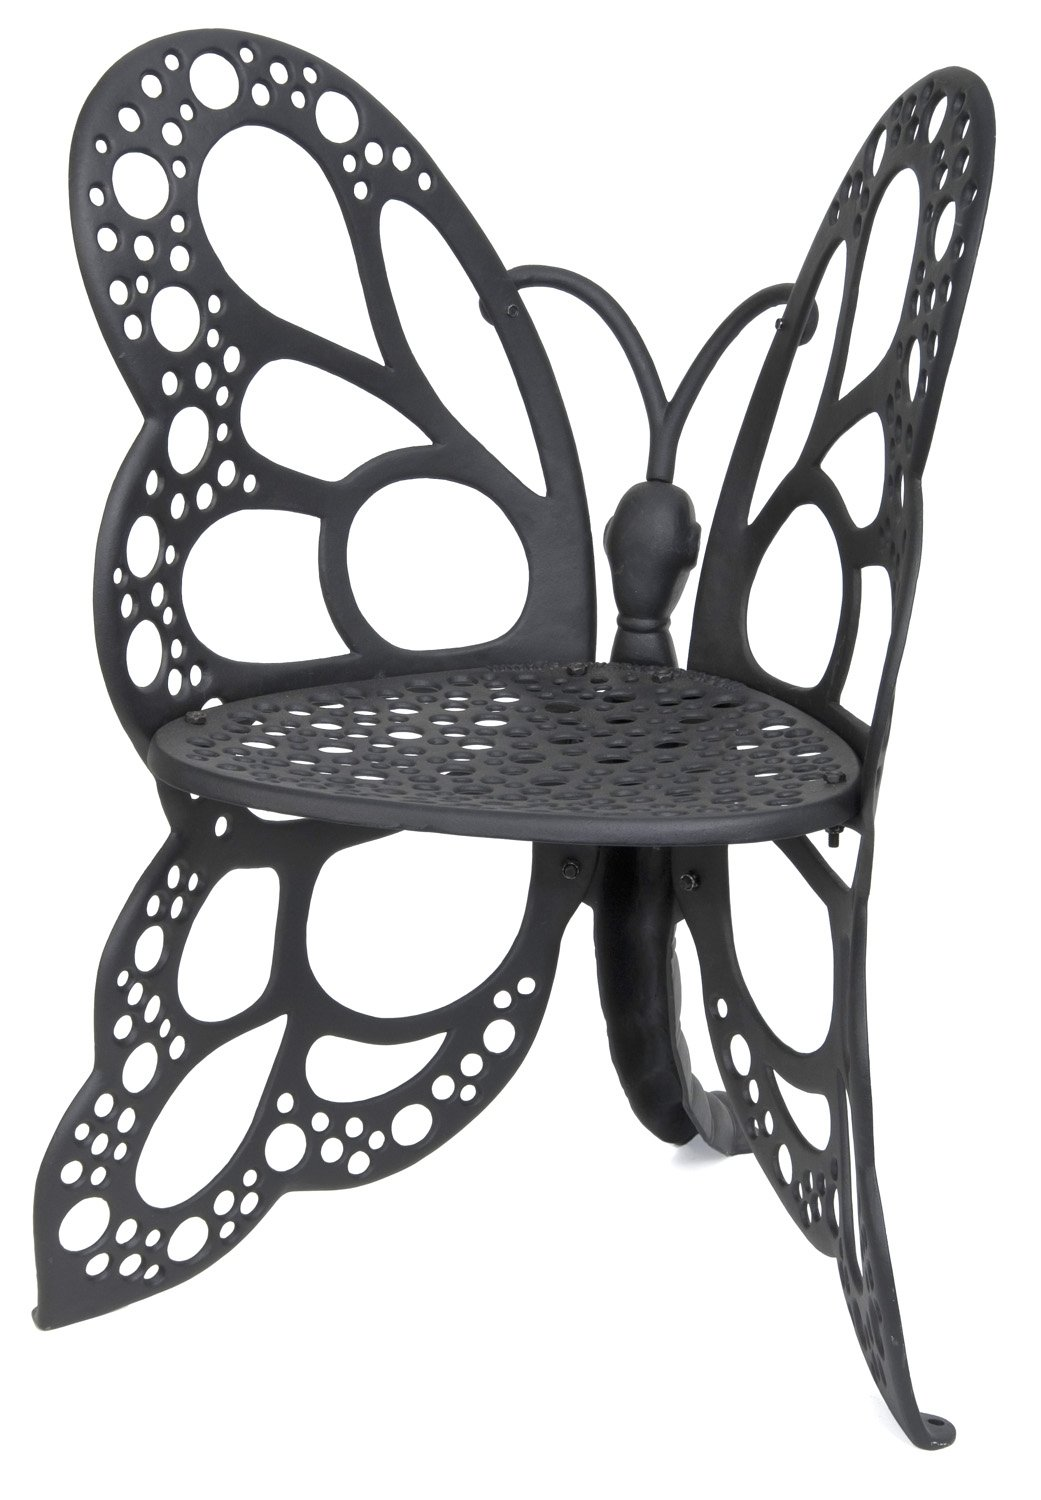 Butterfly chair black - Amazon Com Flower House Fhbc205 Butterfly Chair Black Patio Chairs Patio Lawn Garden